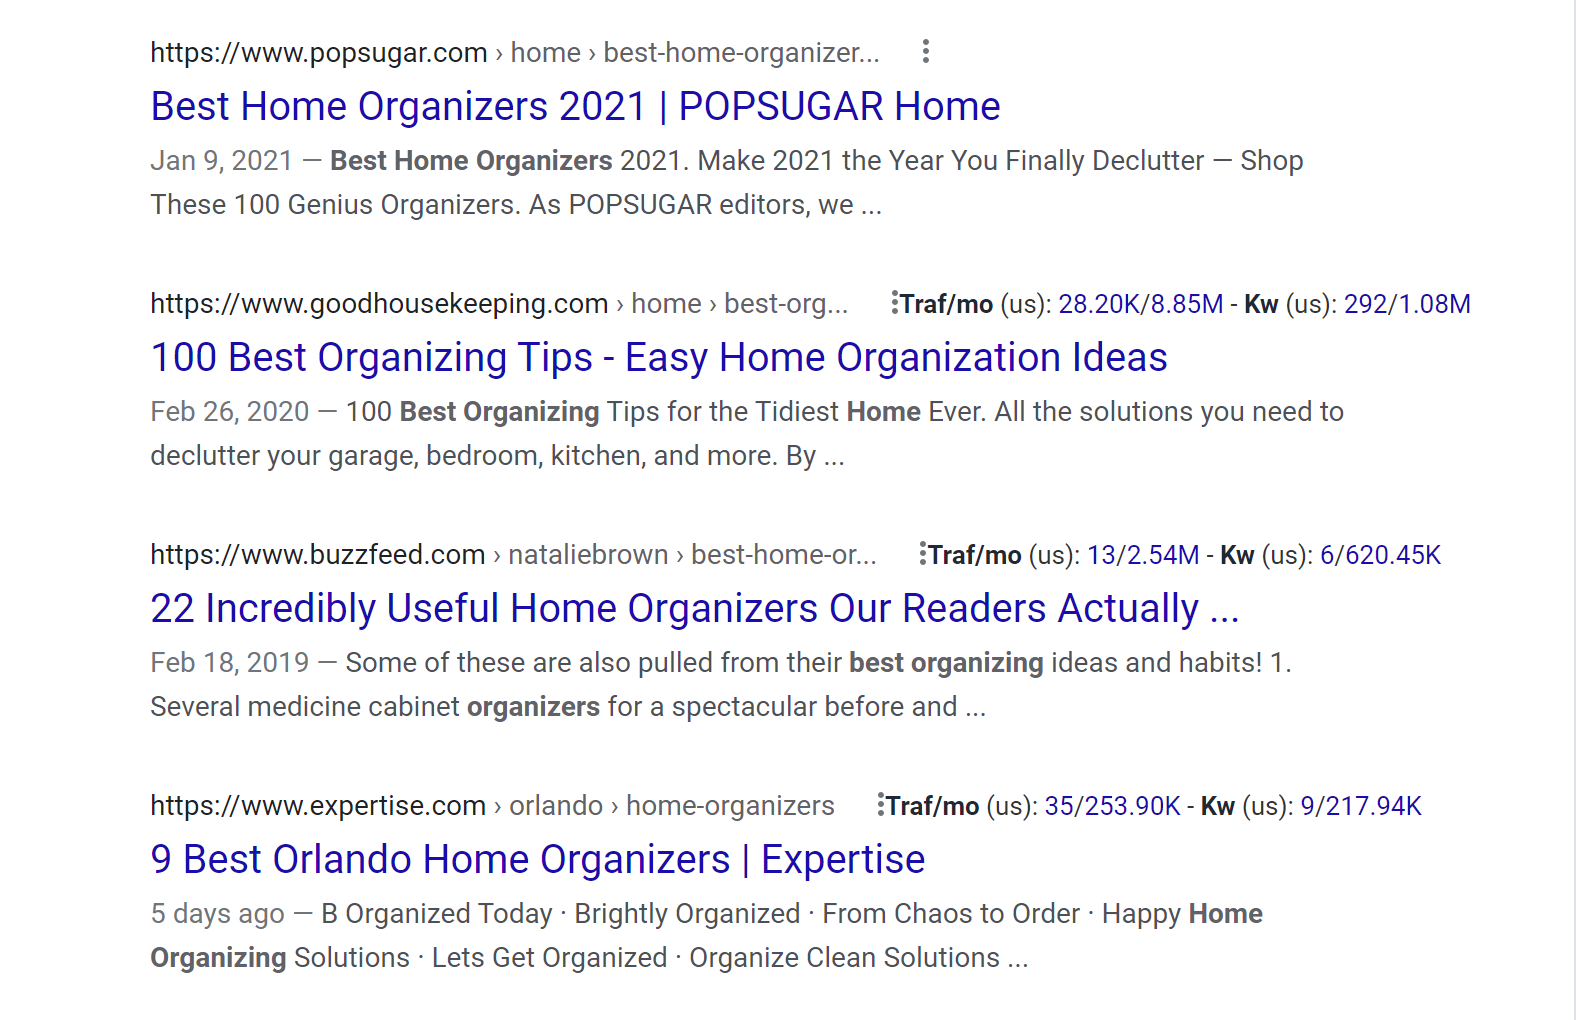 best home organizers serp